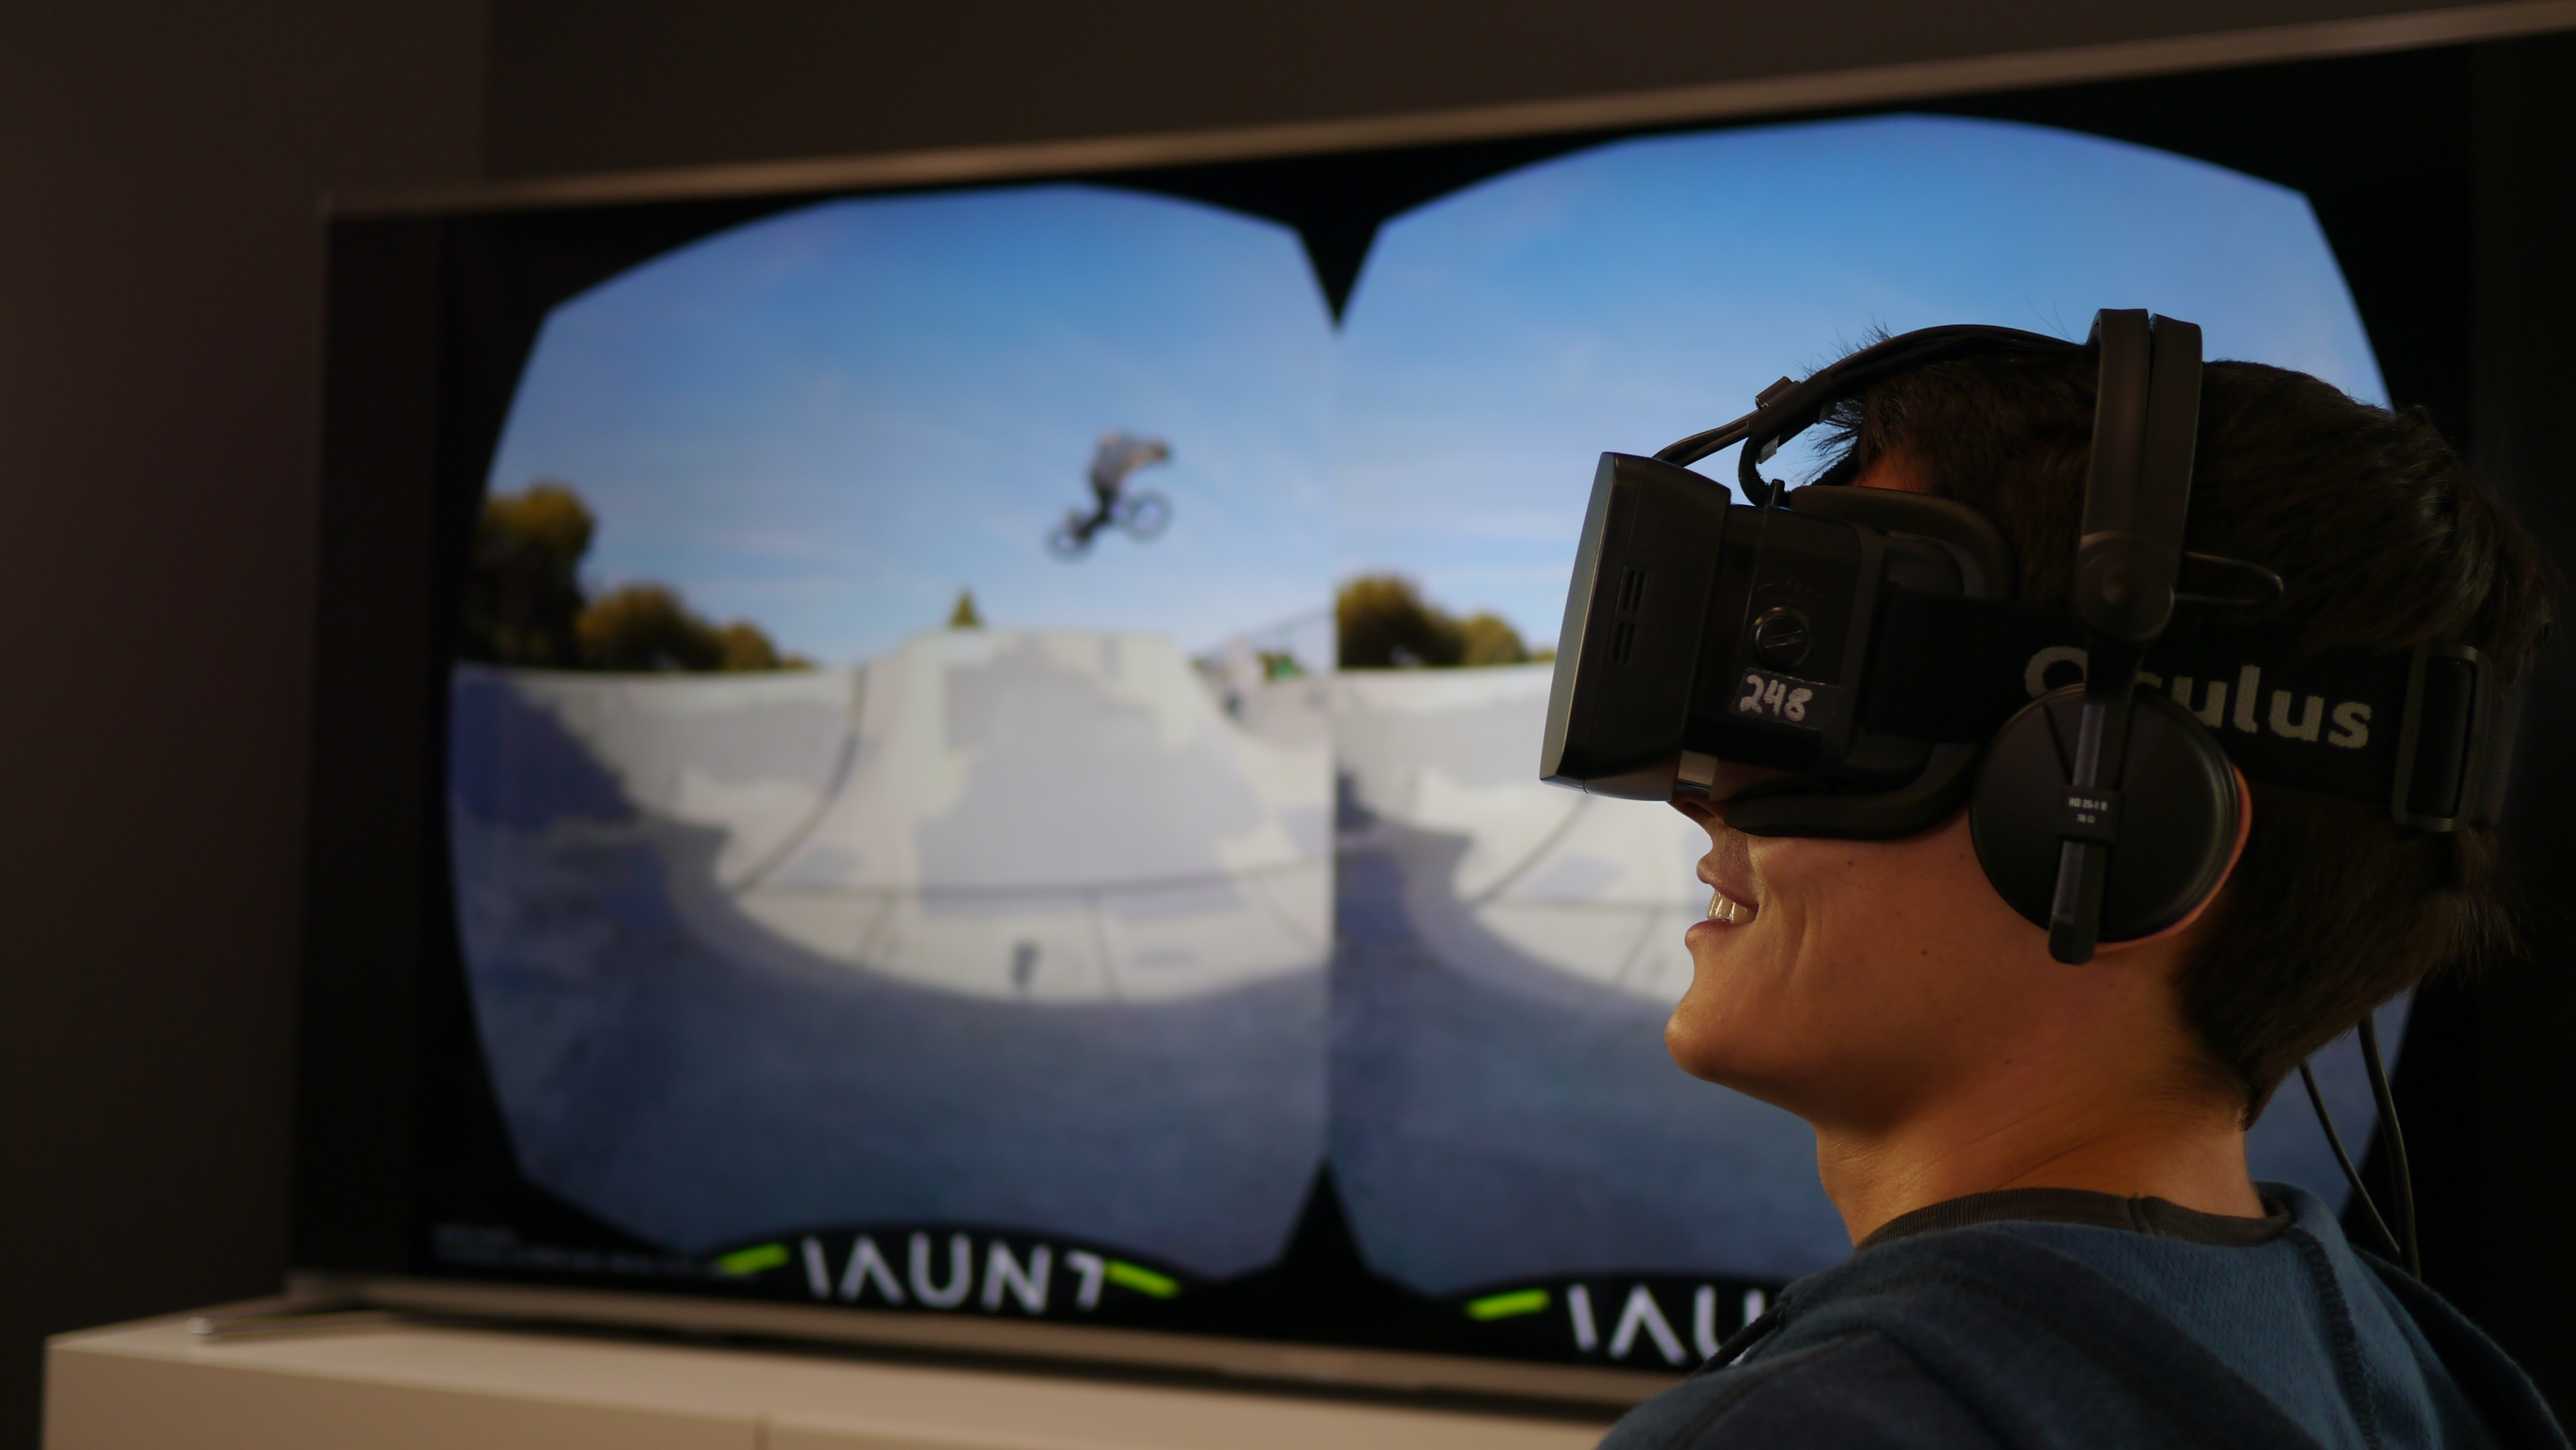 An view of the two images displayed when you look through an Oculus Rift headset paired with Jaunt. Photo courtesy of Jaunt.